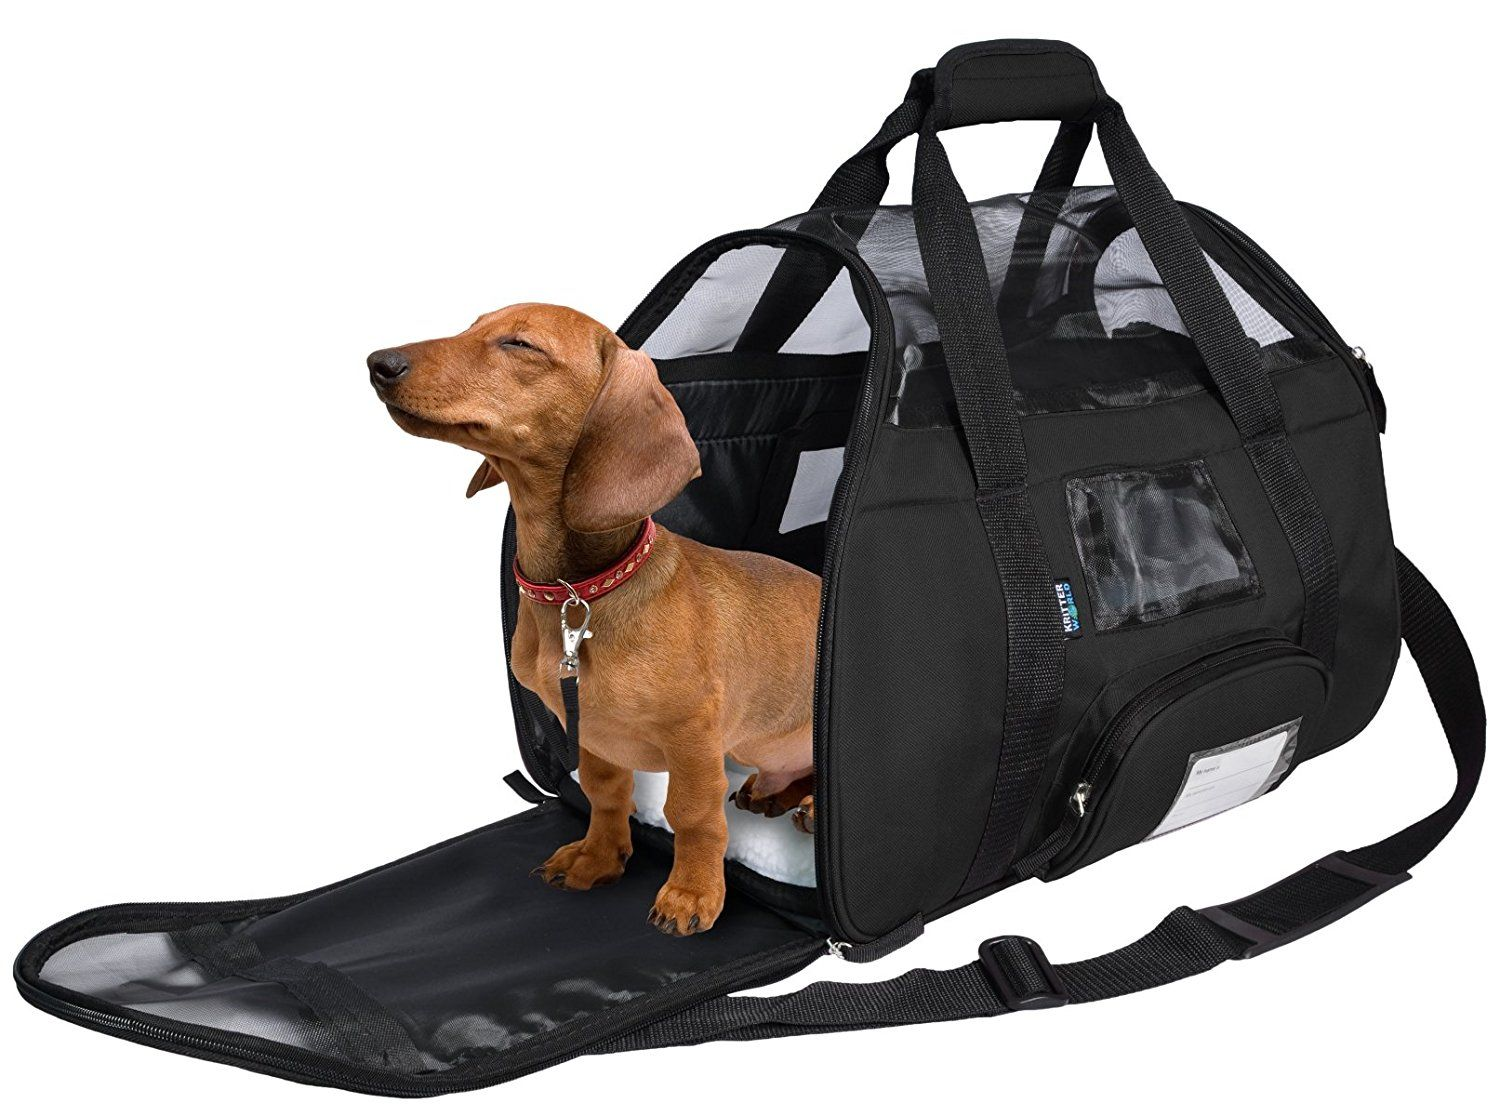 Dachshund Accessories For Dogs Dachshund Central Pet Travel Carrier Pet Travel Dog Backpack Carrier